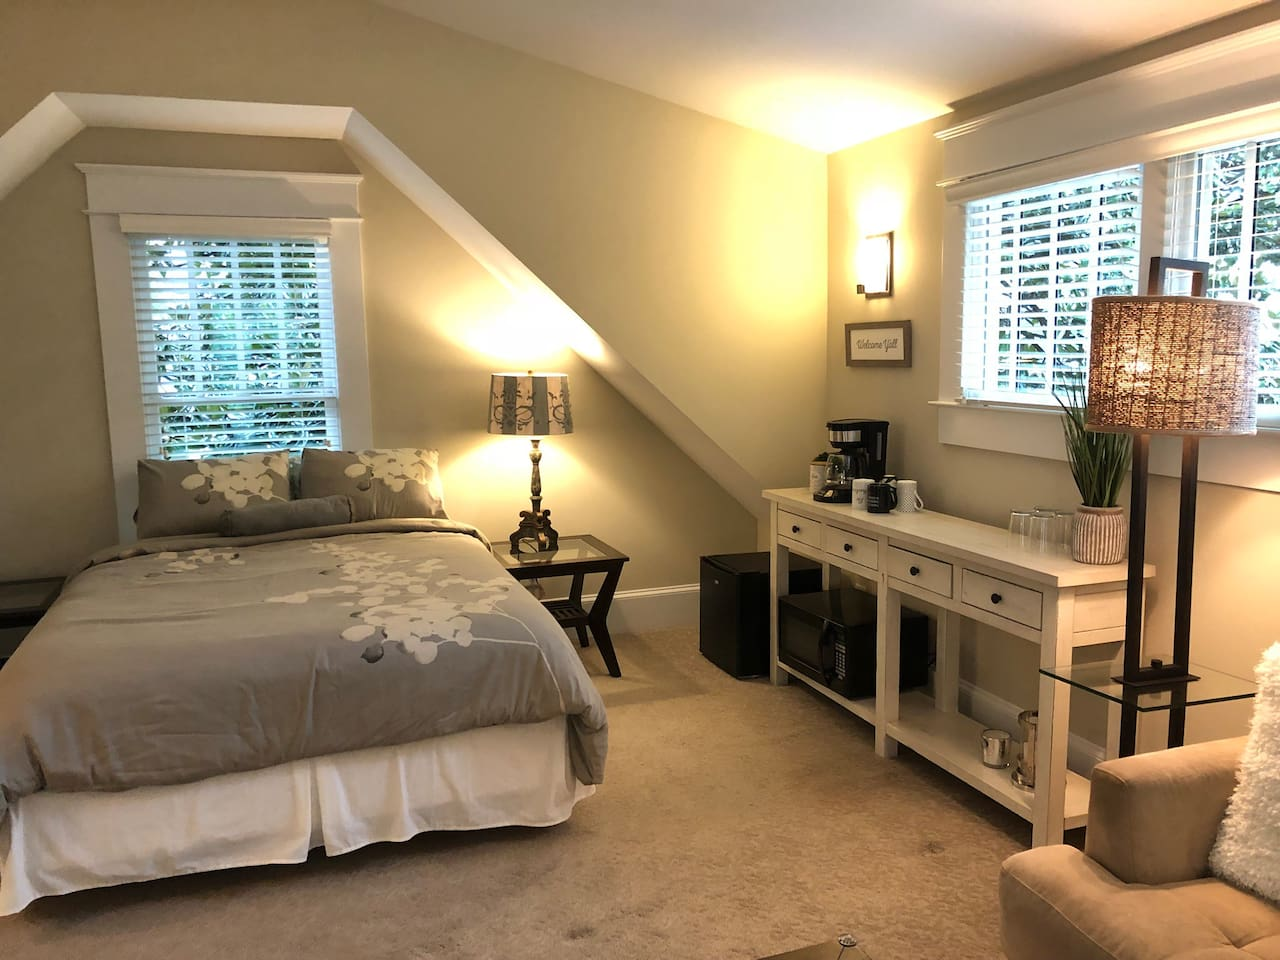 Queen bed. Kitchenette with microwave, mini fridge, bowls, plates, paper towels, and silverware. Coffee, creamer and cups provided.